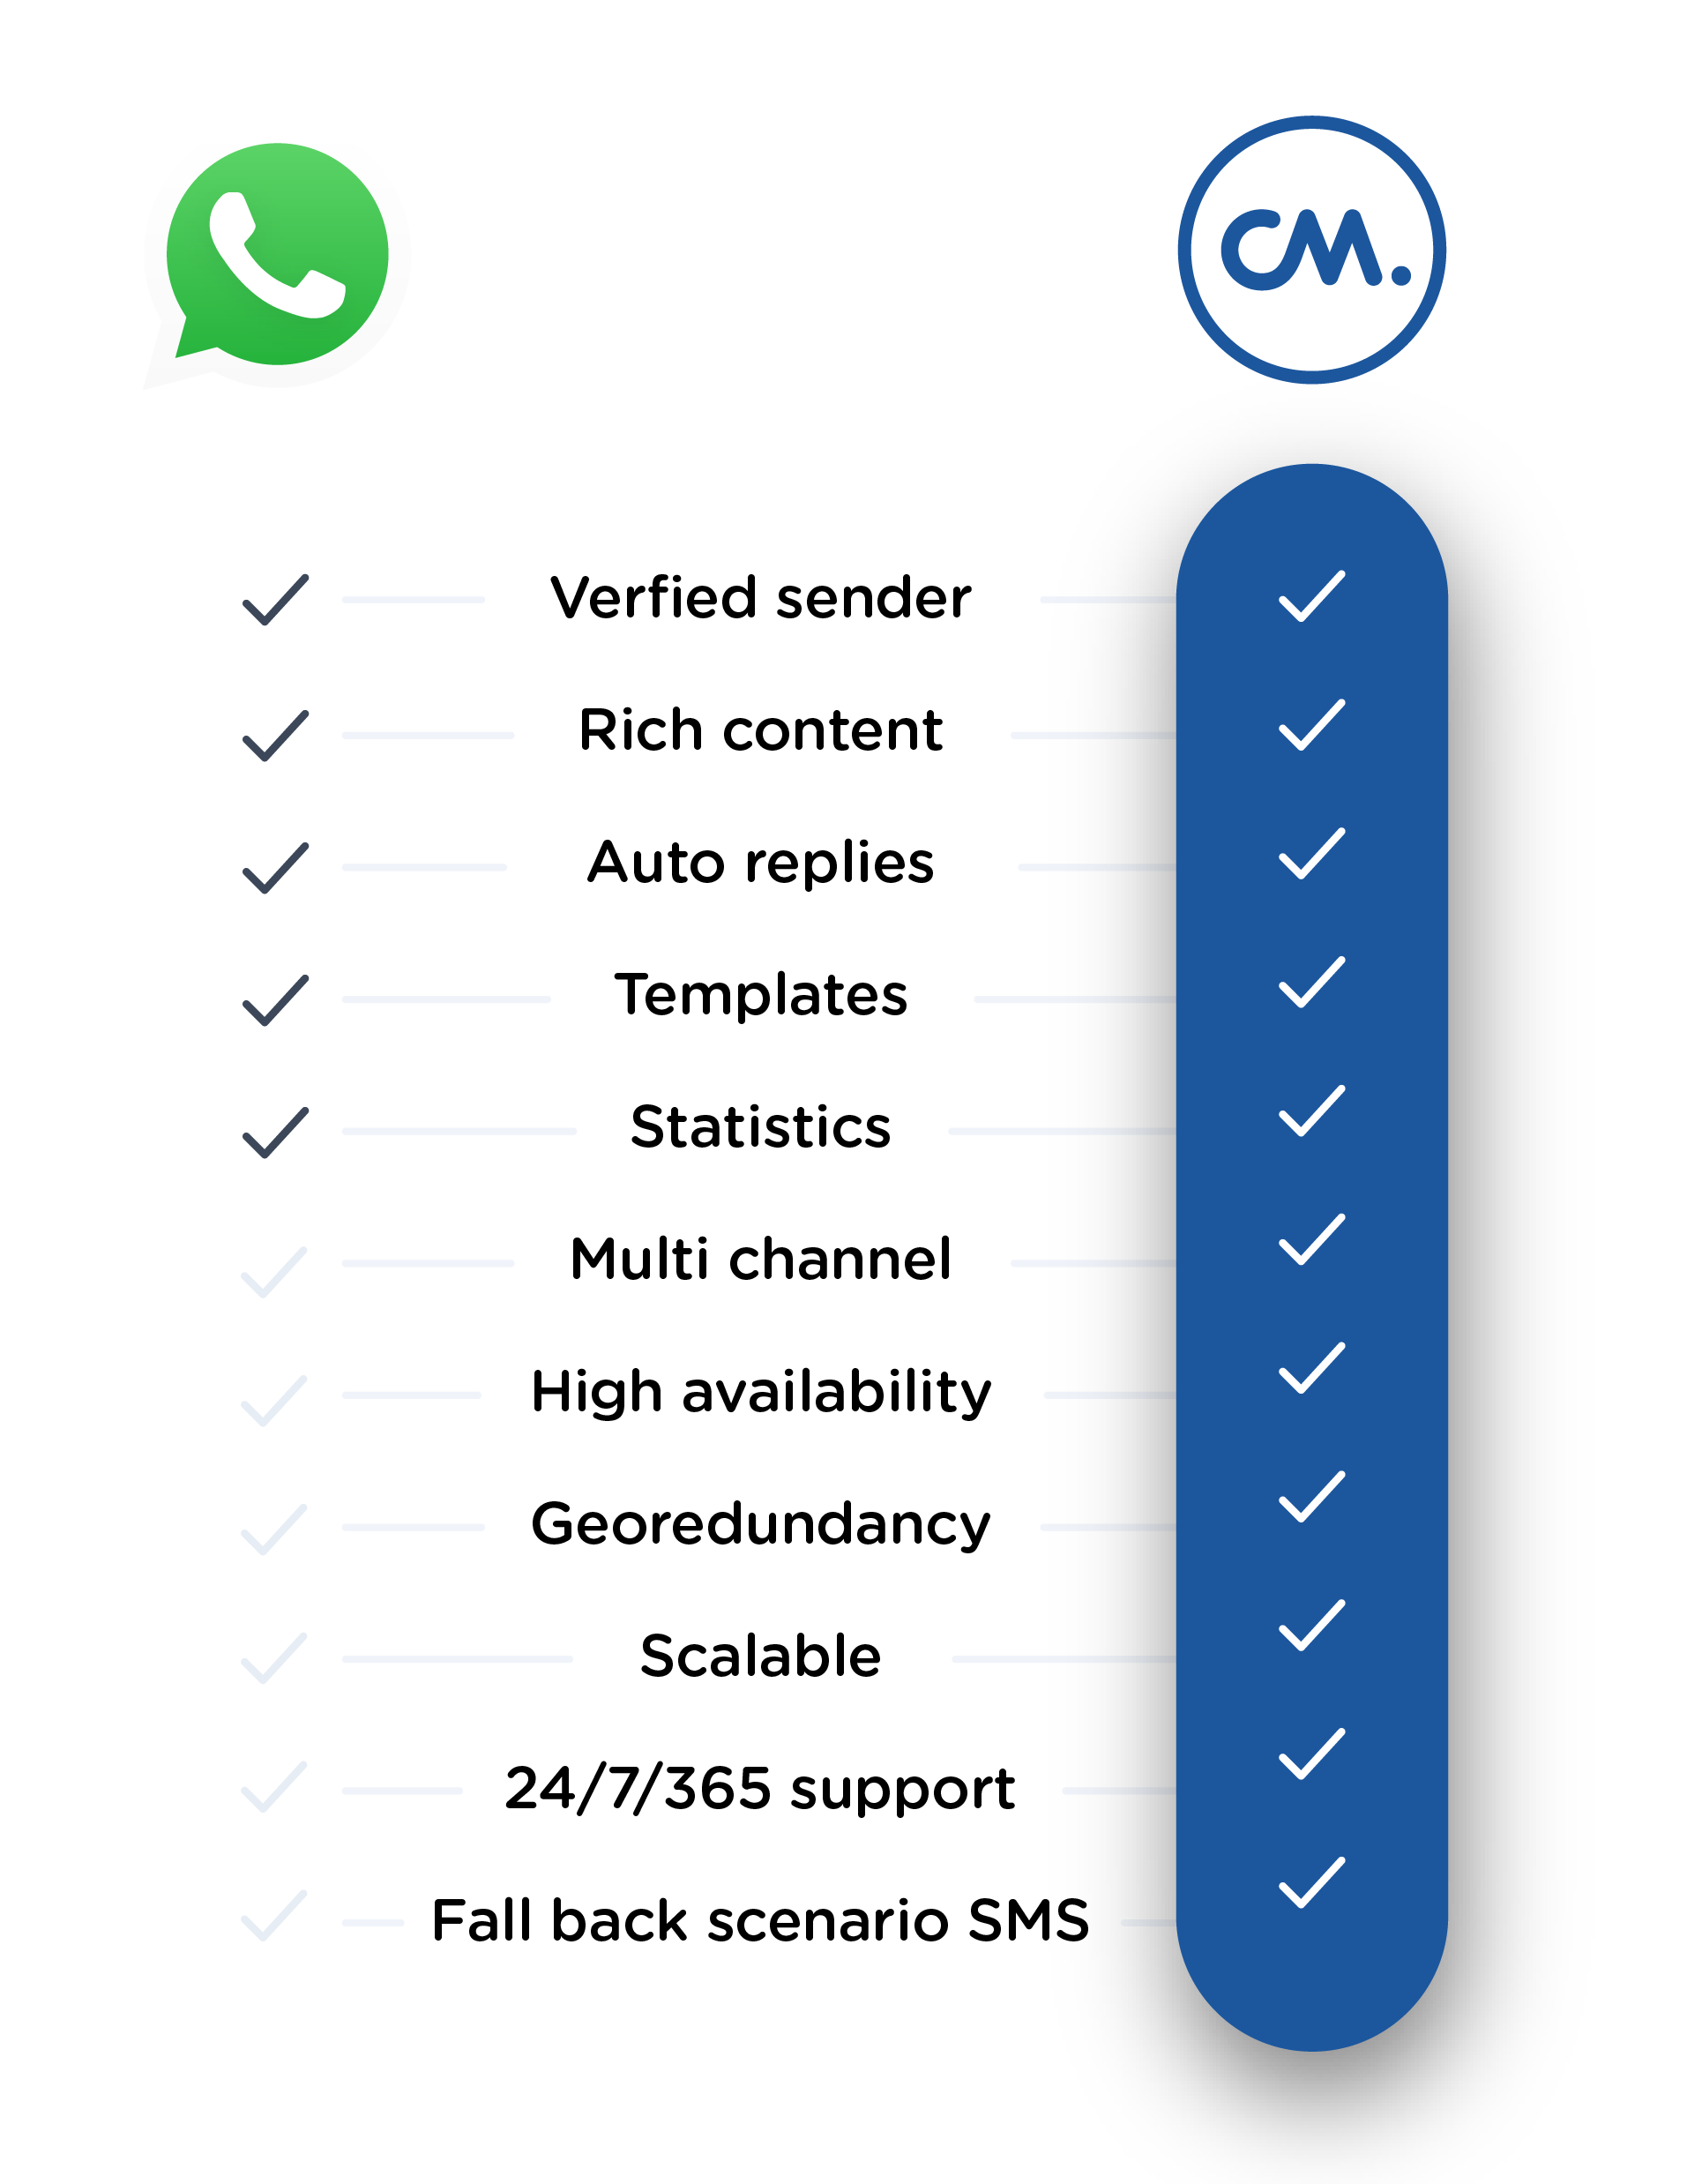 Why do I need a CPaaS like CM.com to use WhatsApp Business? | CM Help Center